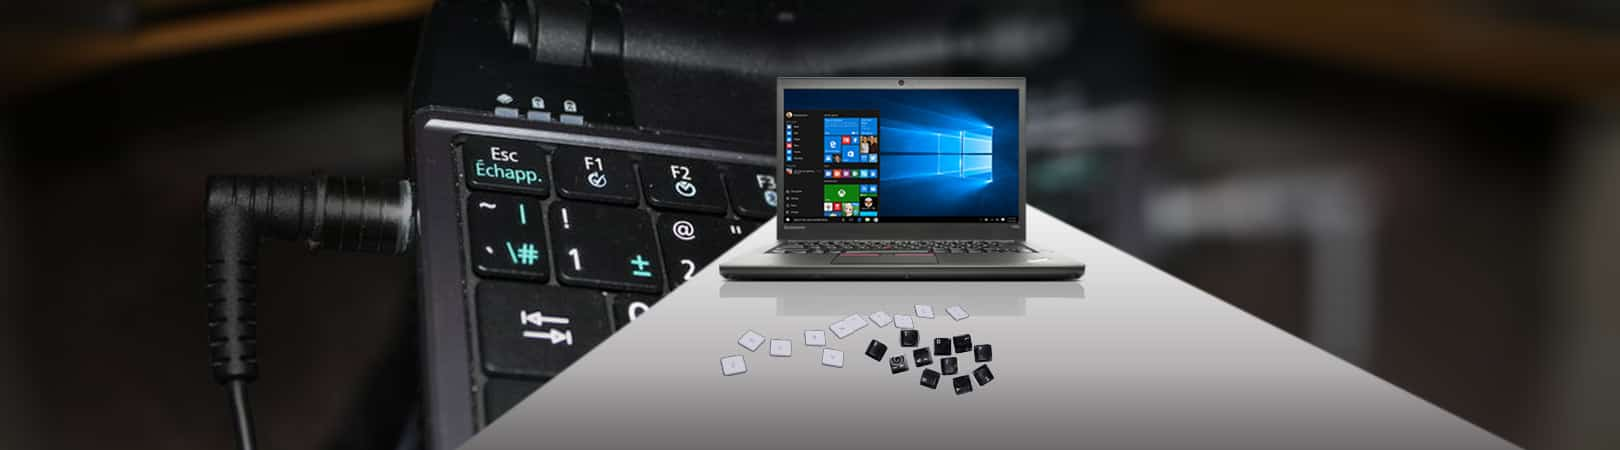 banner image - Dell Laptop Keyboard Replacement